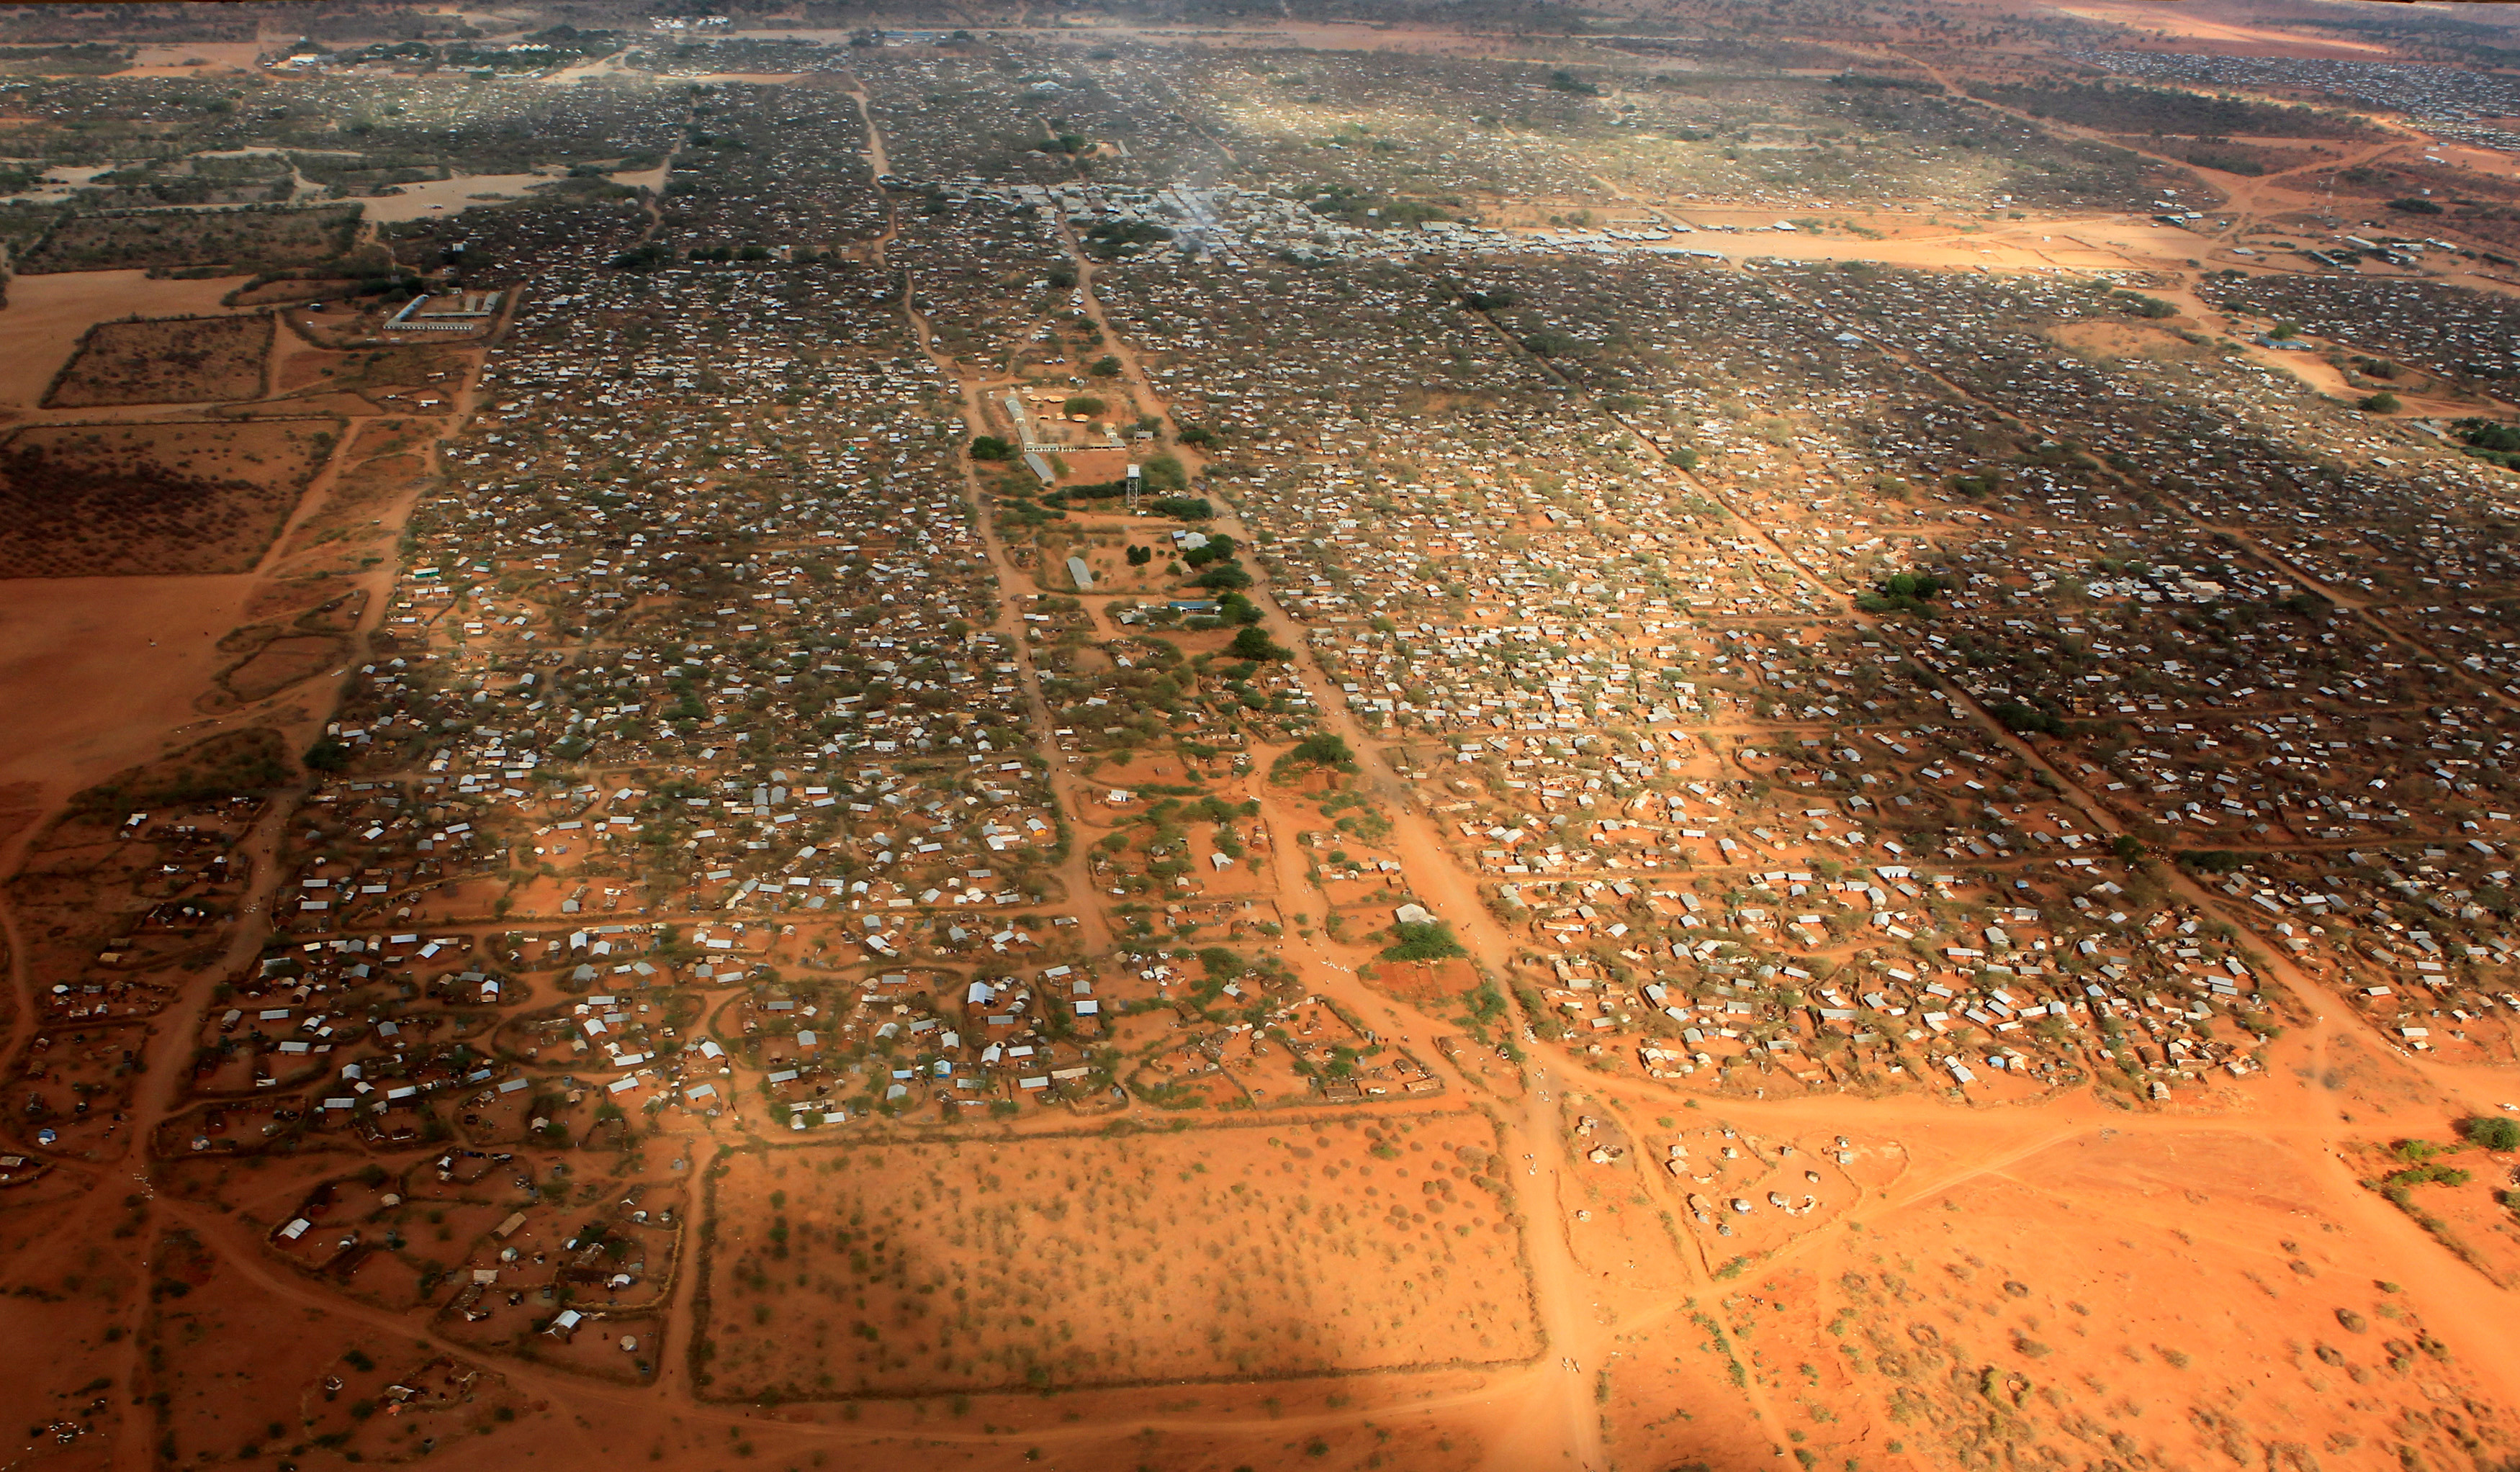 An aerial view shows makeshift shelters at the Dagahaley camp in Dadaab, near the Kenya-Somalia border in Garissa County, Kenya